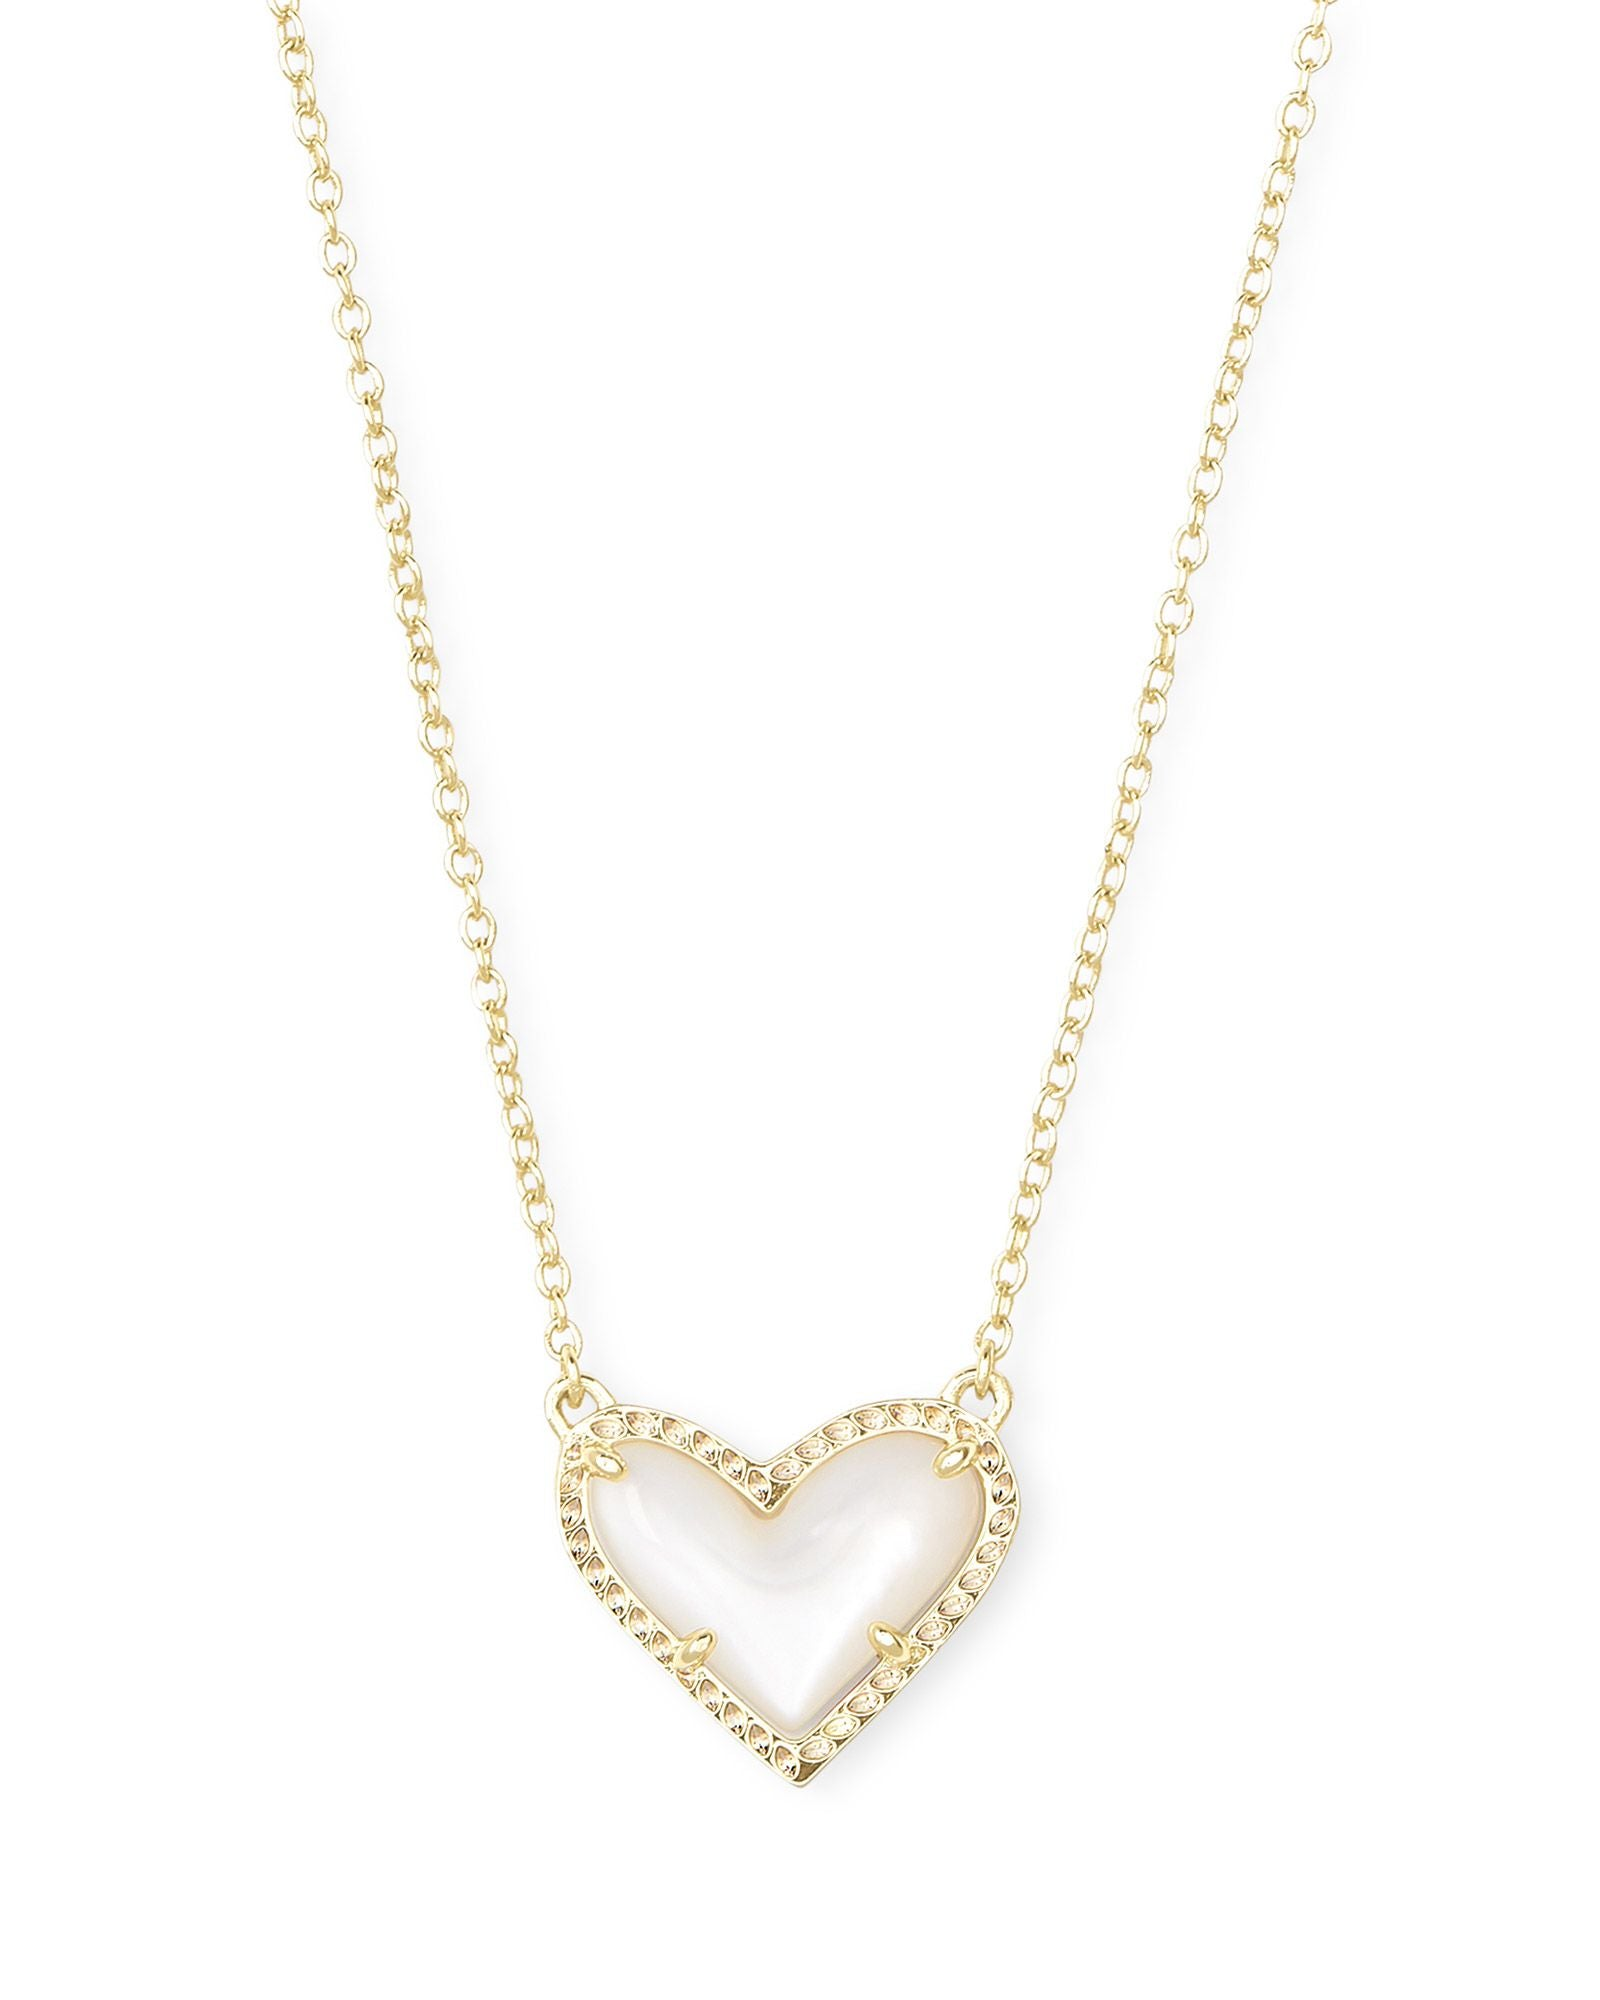 Ari Heart Gold Pendant Necklace In Ivory Mother-Of-Pearl